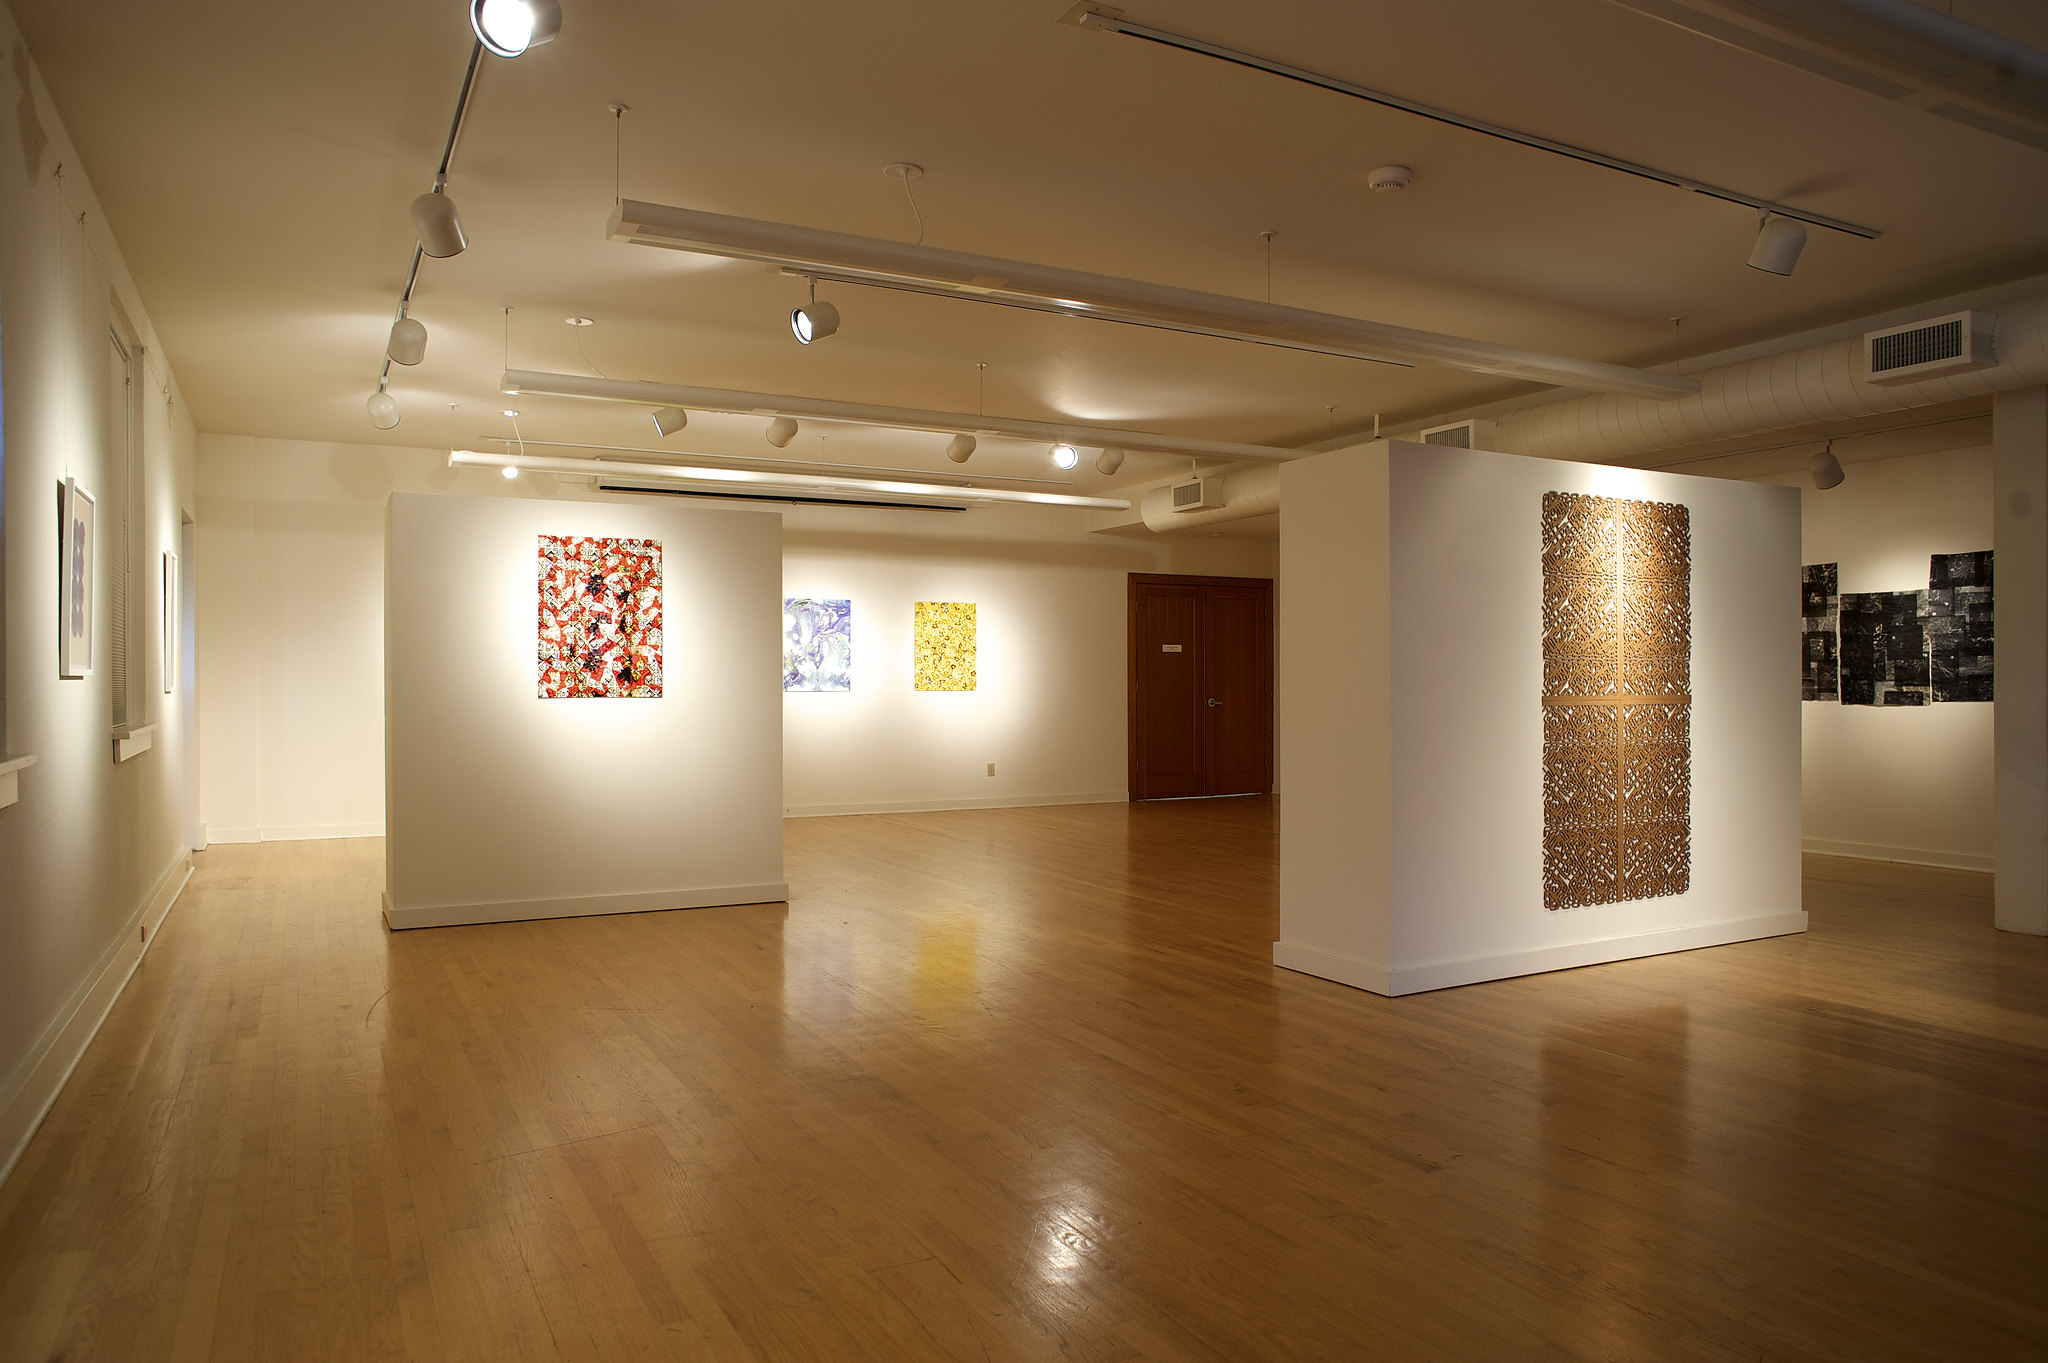 Charlene Liu  exhibited at Crow's Shadow Institute of the Arts, Confederated Tribes of the Umatilla Indian Reservation